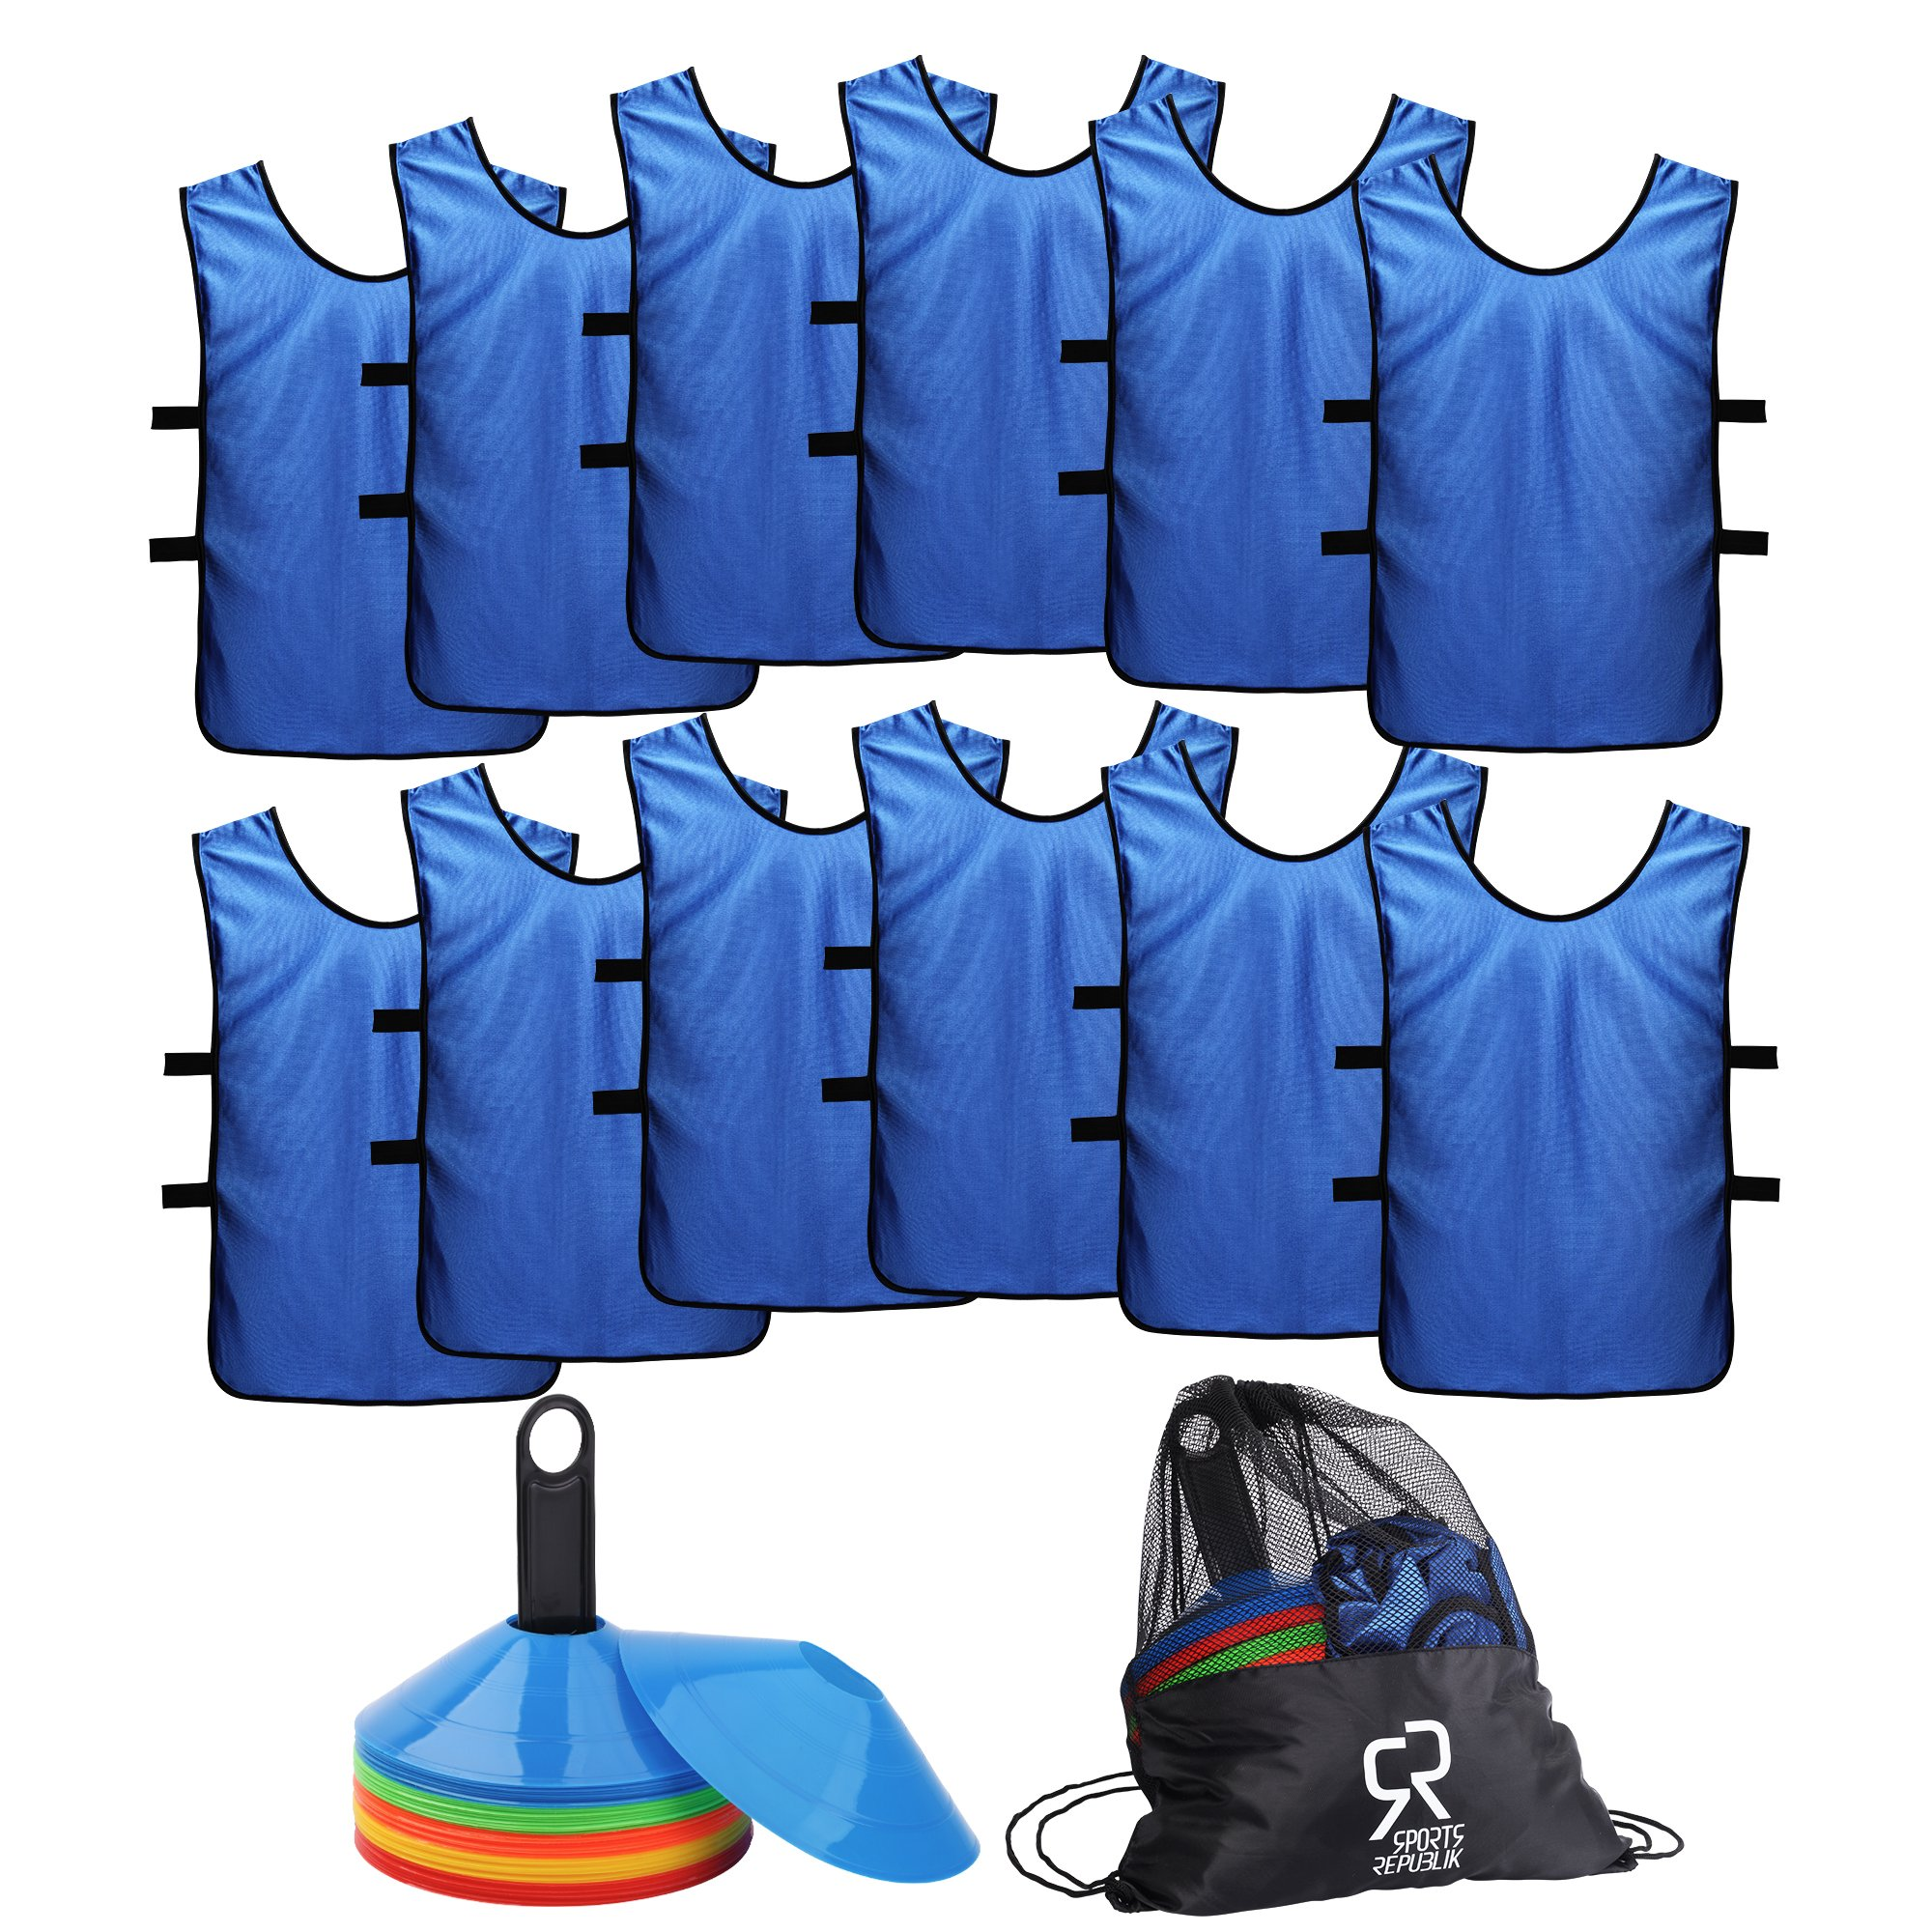 Soccer Cones (Set of 50) and Sports Jerseys Pinnies (12-Pack) - Perfect Disc Cones for Basketball Drills, Complete Soccer Training Equipment by SportsRepublik (Image #1)